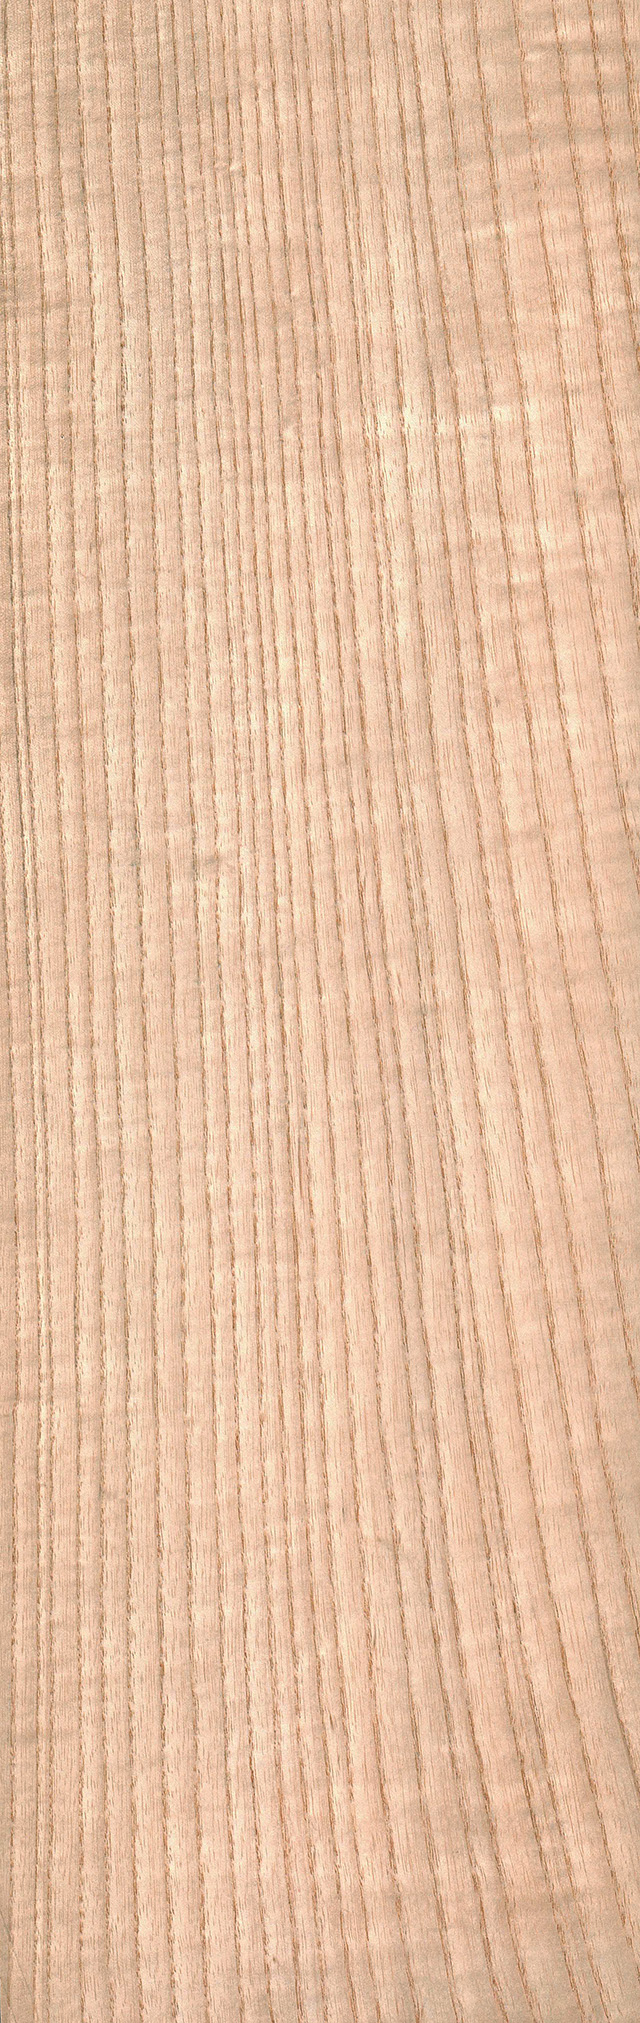 White Ash Wood Grain ~ White ash the wood database lumber identification